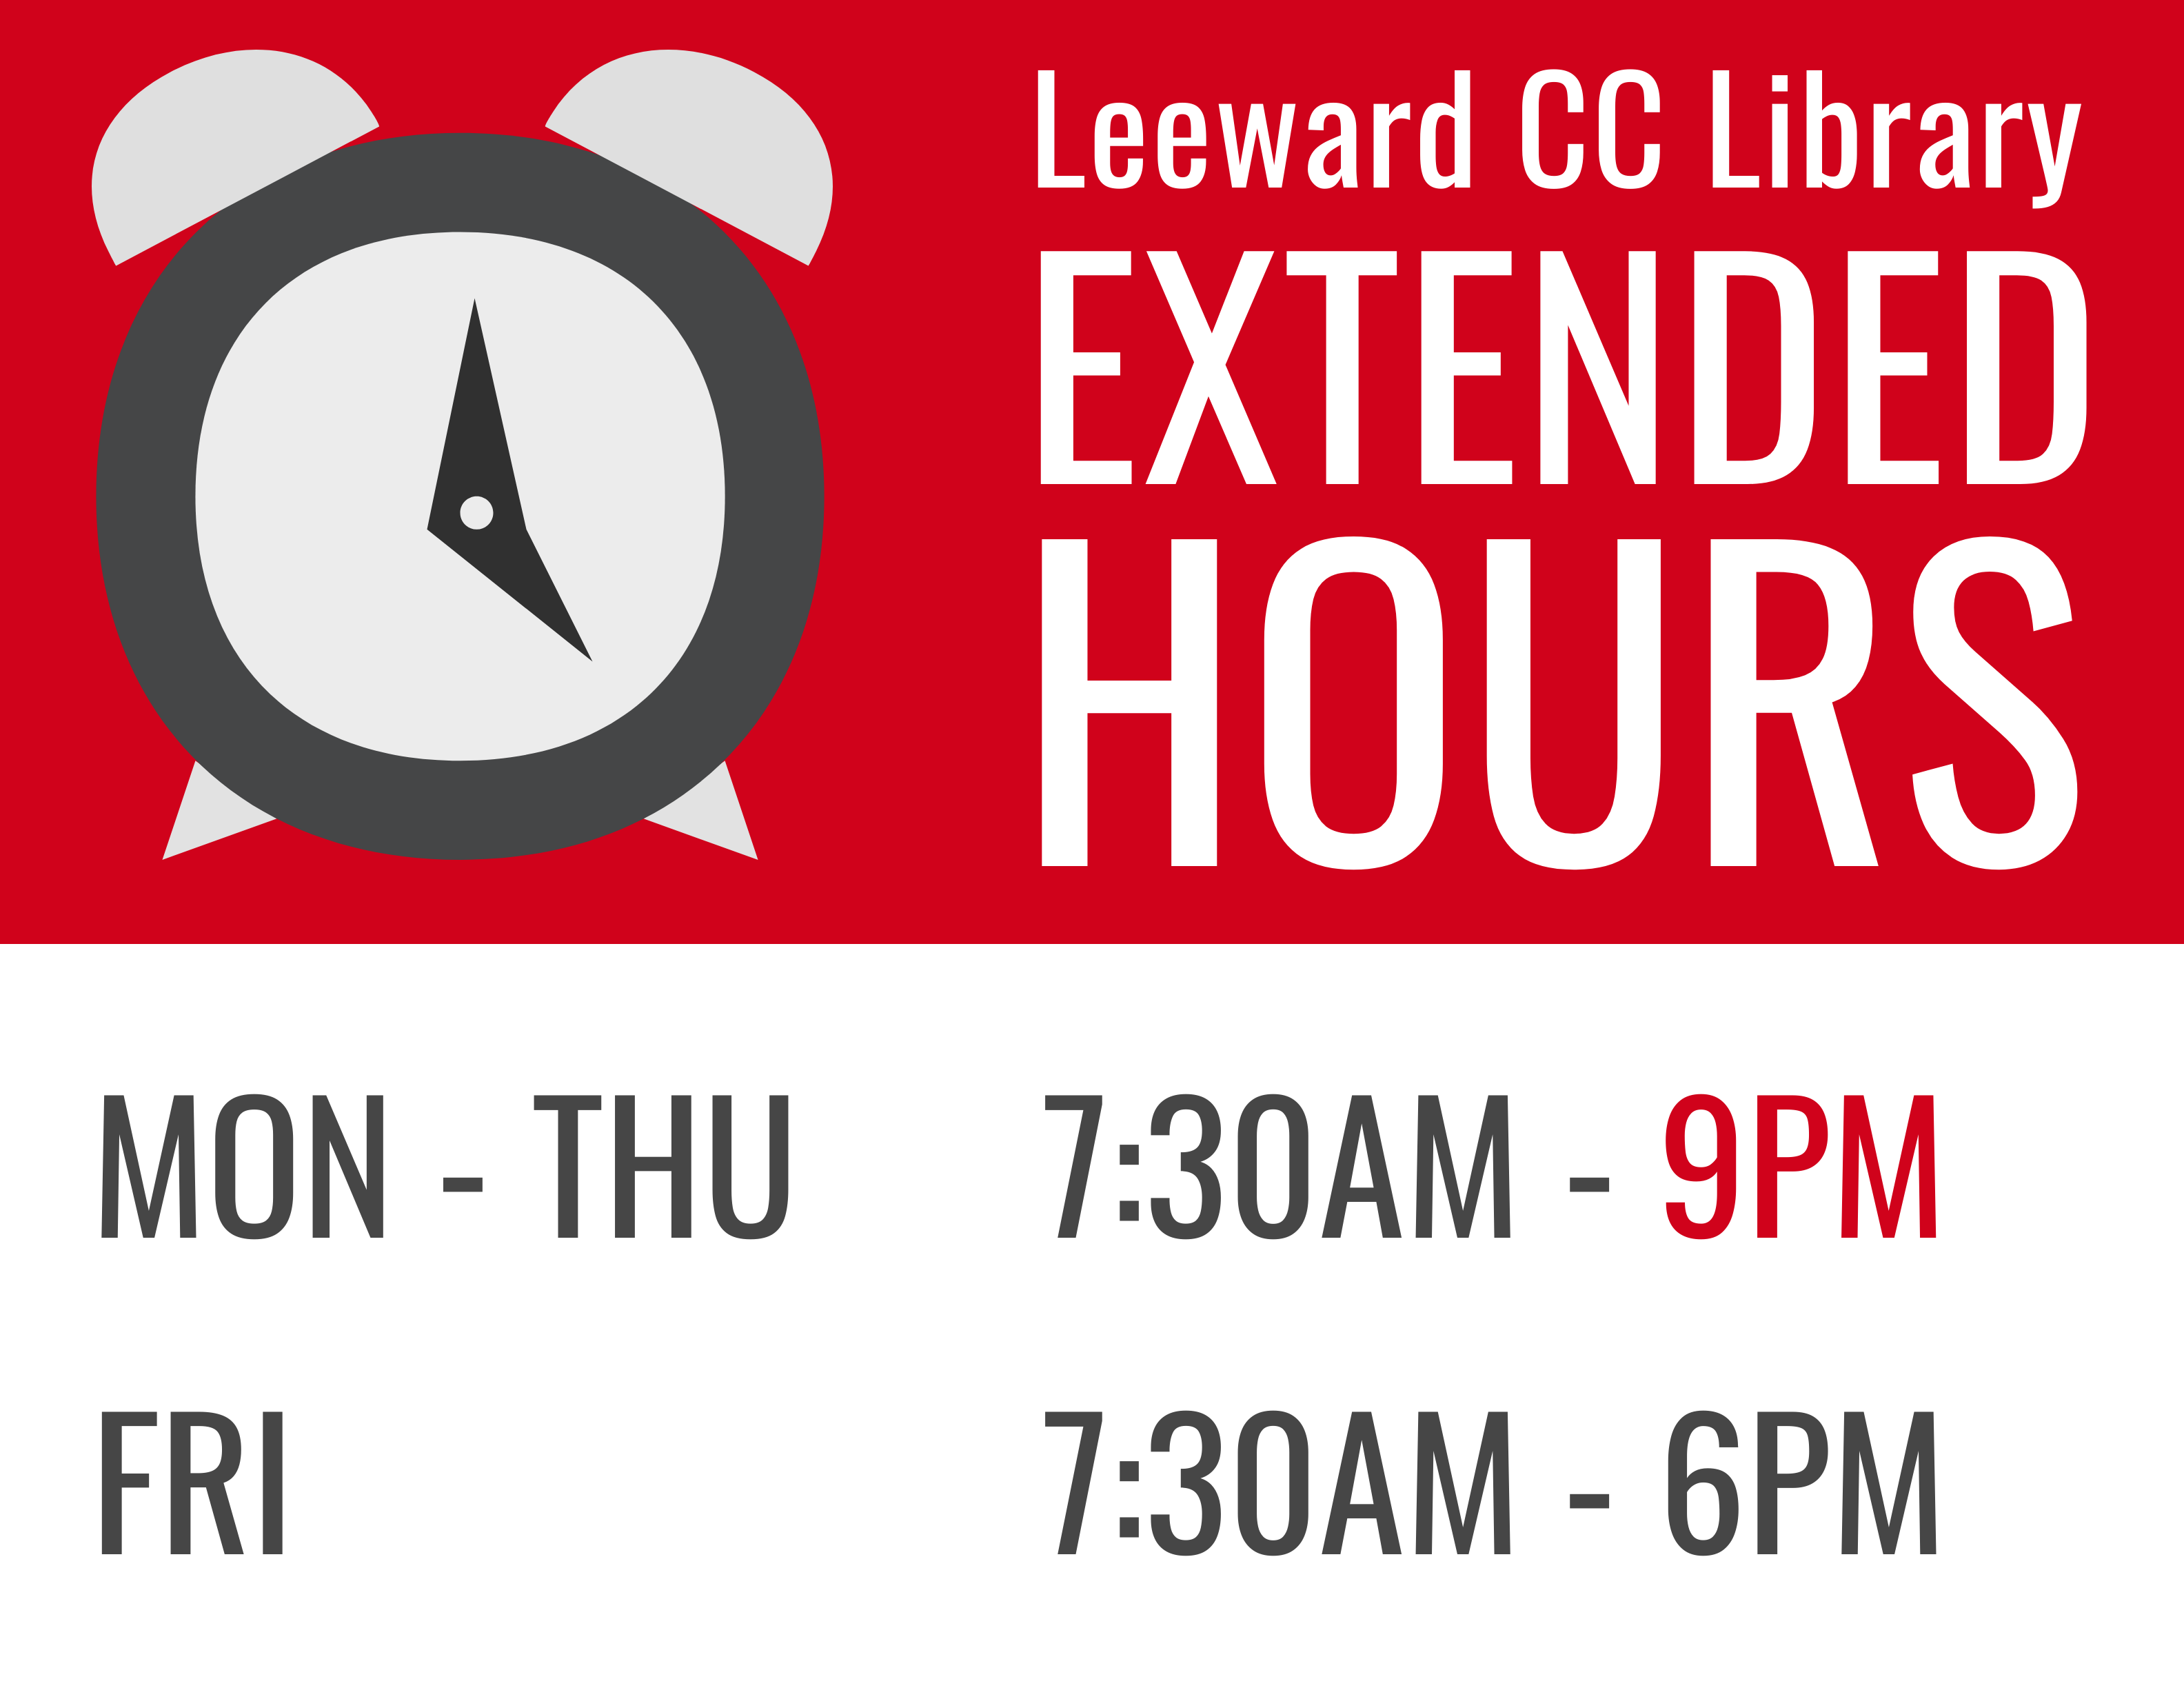 Library Extended Hours: Monday-Thursday 7:30am-9pm; Friday 7:30am-6pm